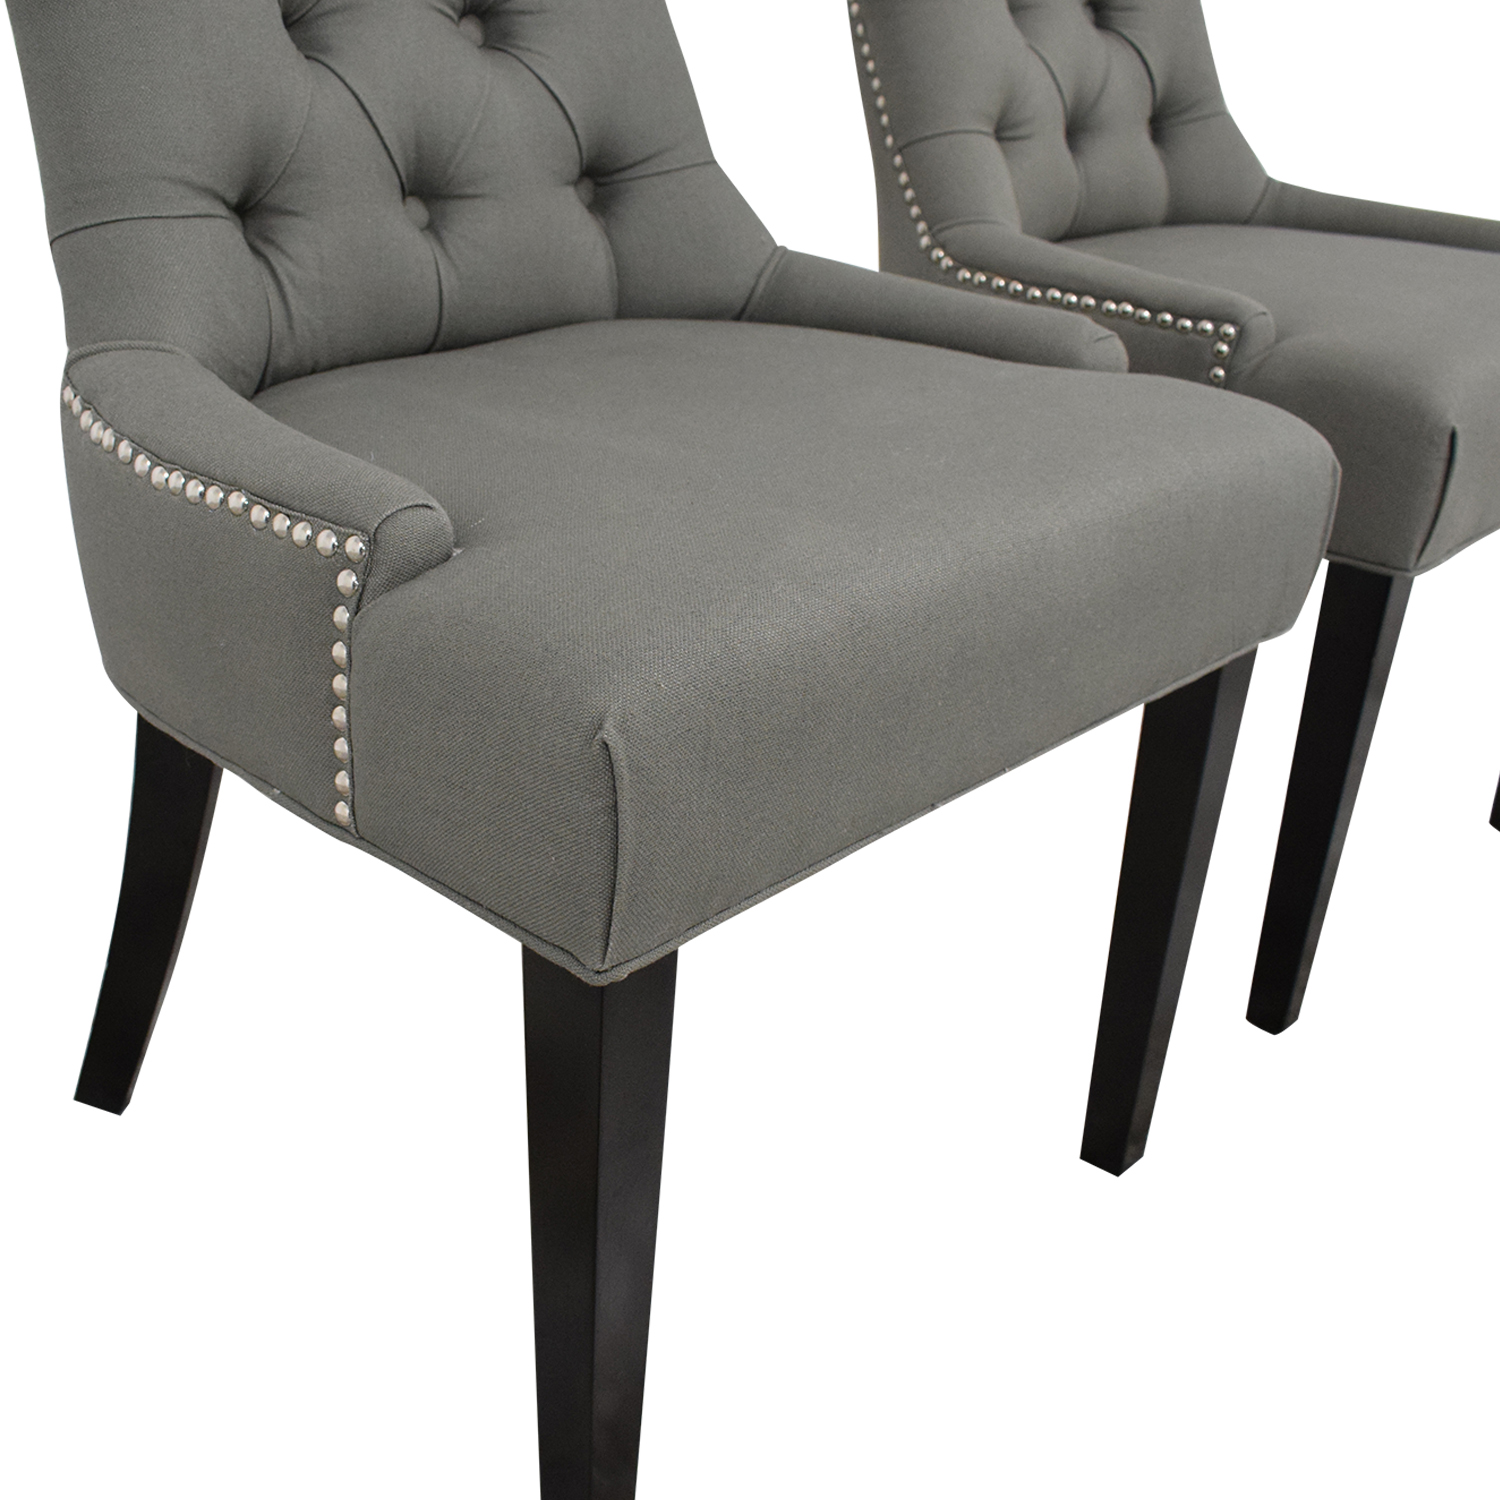 Safavieh Abby Dining Chair / Dining Chairs